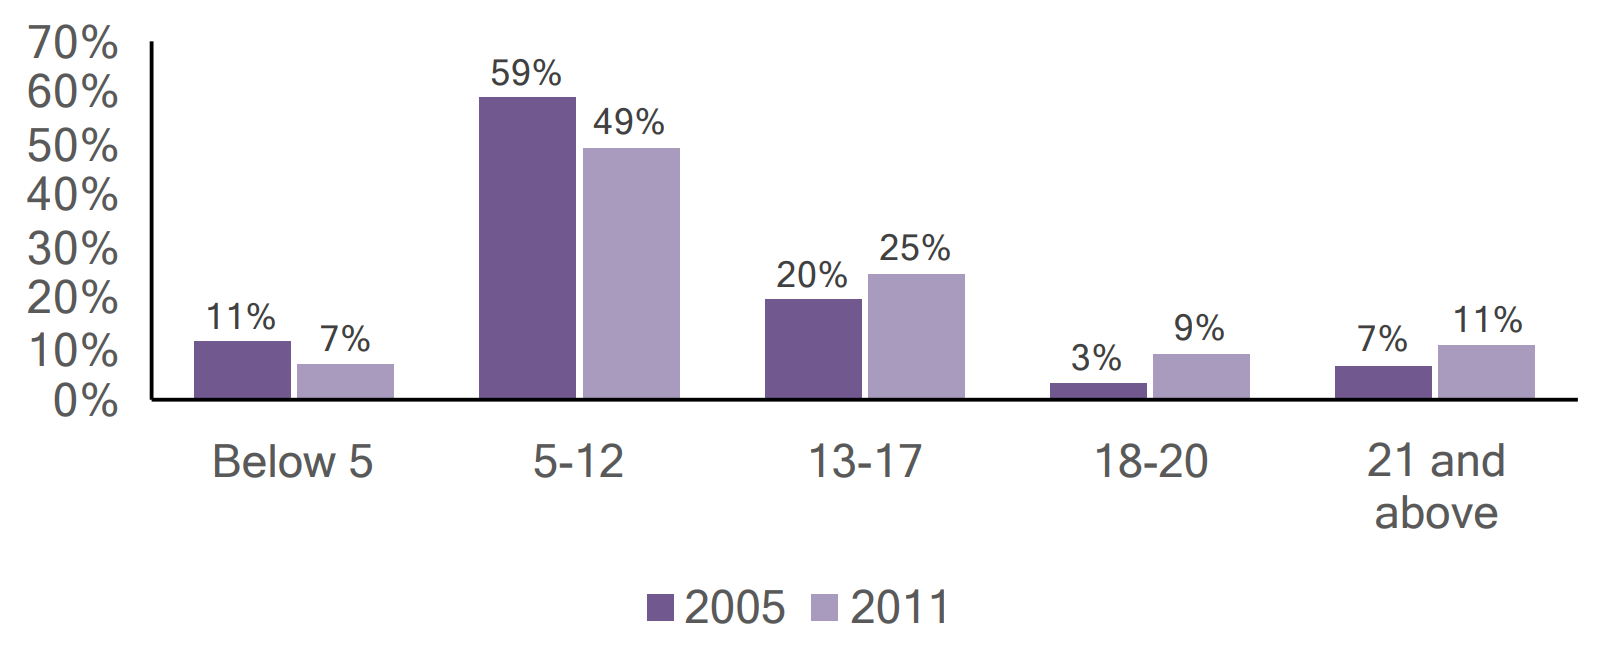 Bar graph of individuals with autism in Greene County by age, comparing 2005 and 2011 data.